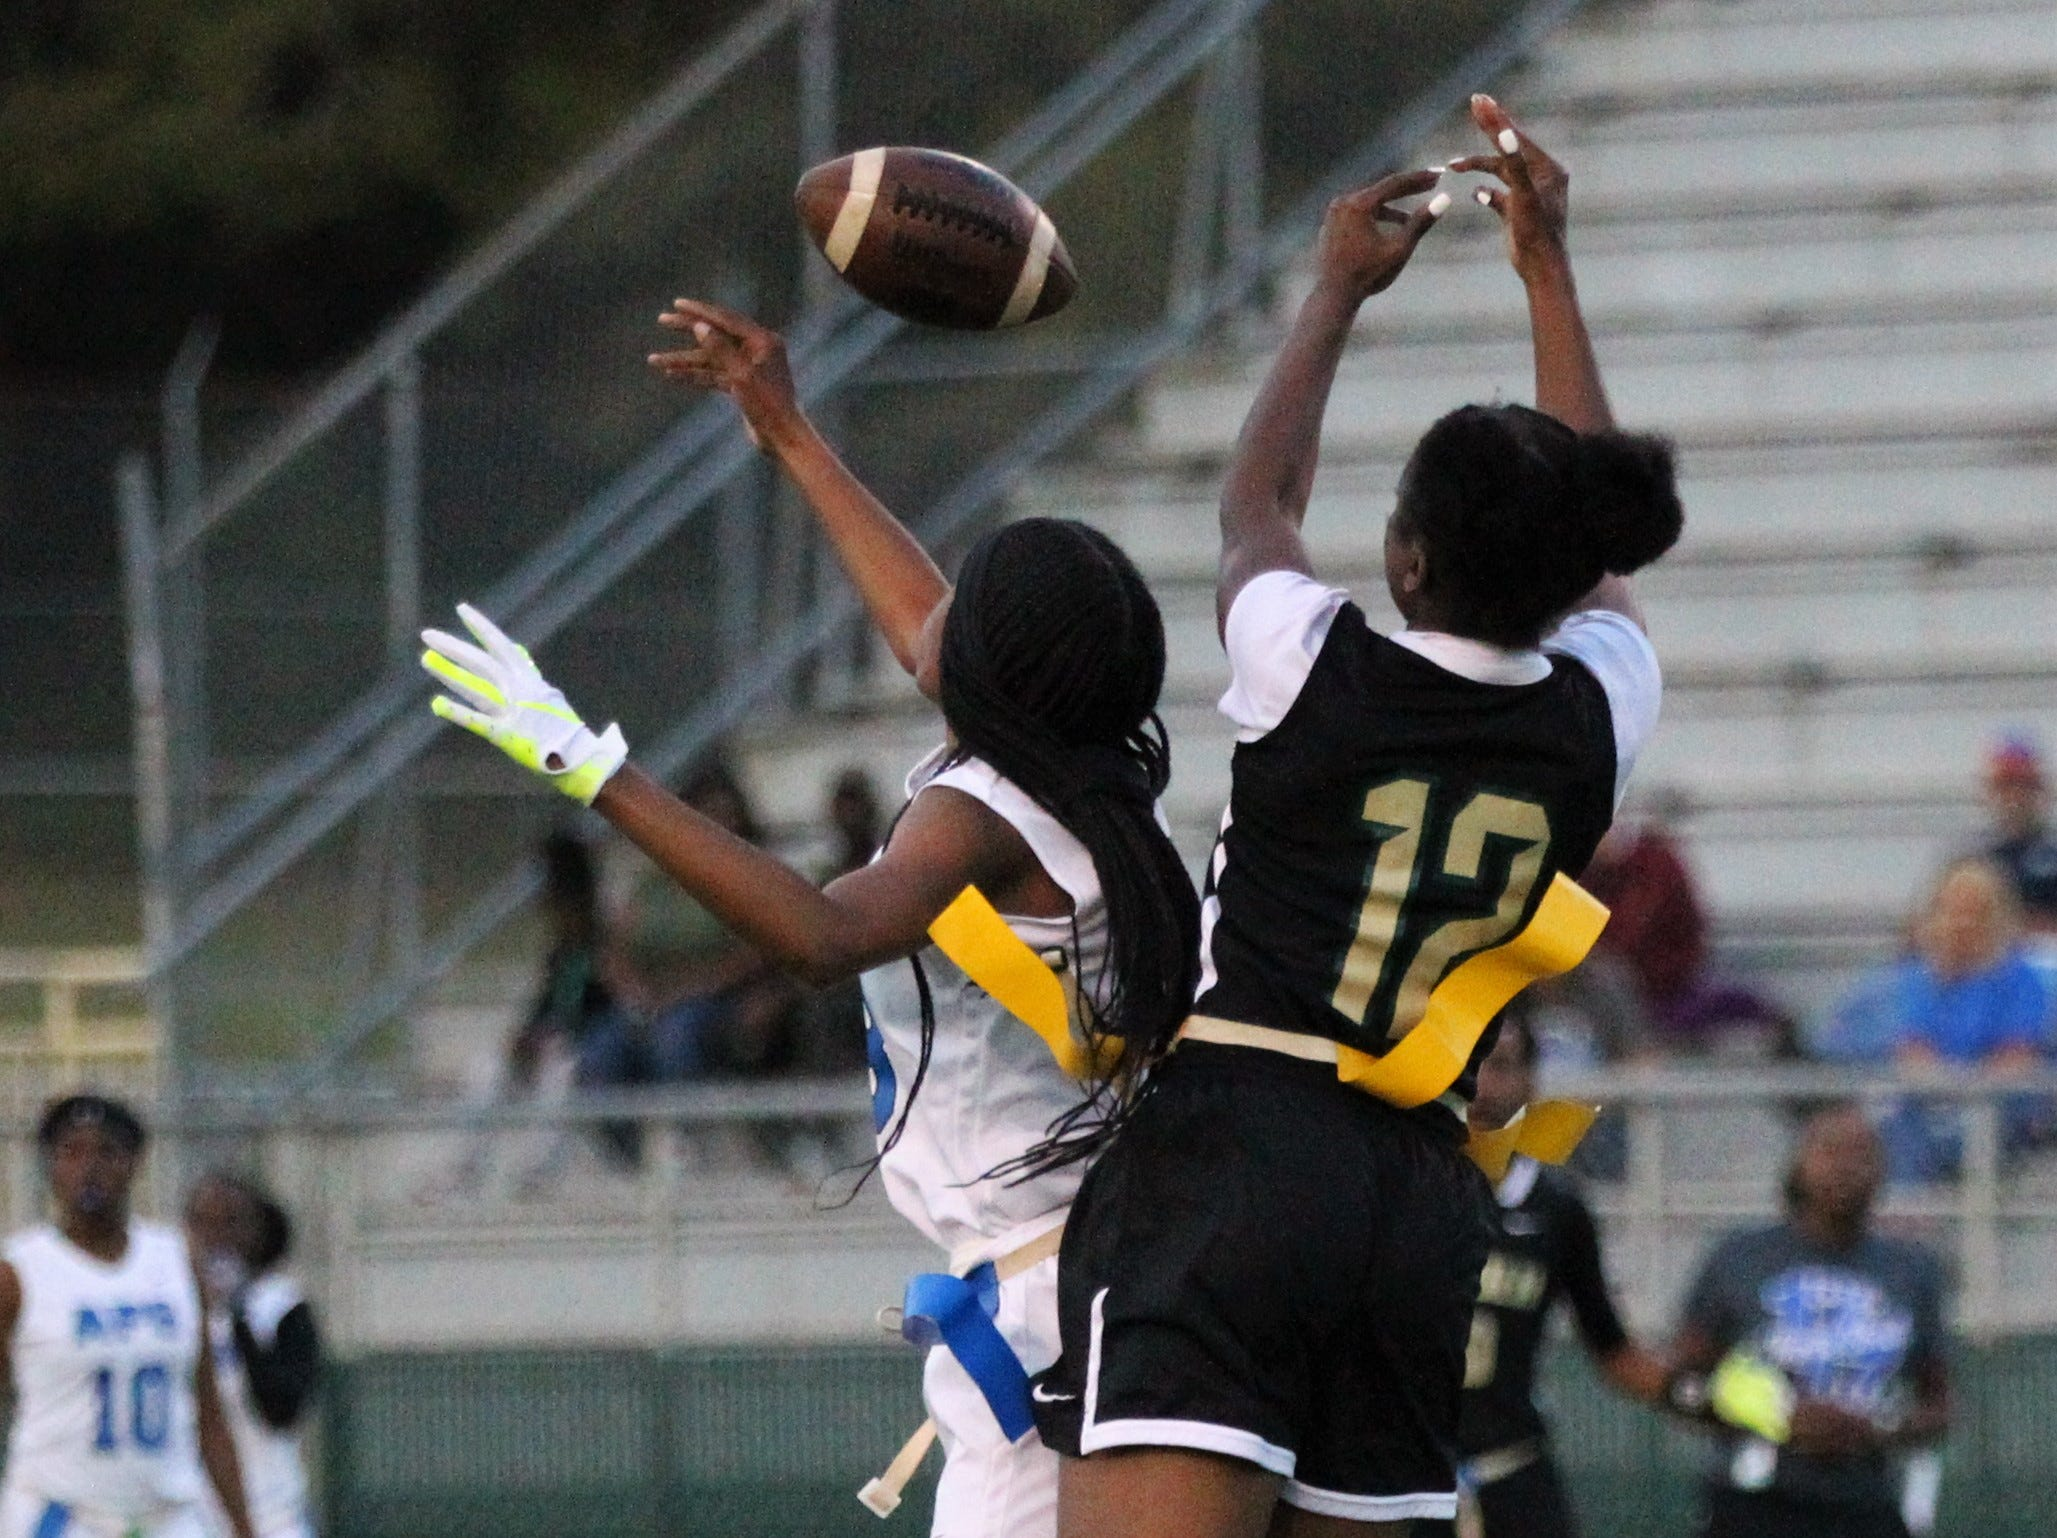 Godby receiver Gisele Jones managed to break up an interception and catch the ball for a long yardag as Godby's flag football team beat Lincoln 25-6 at Gene Cox Stadium on March 14, 2019.